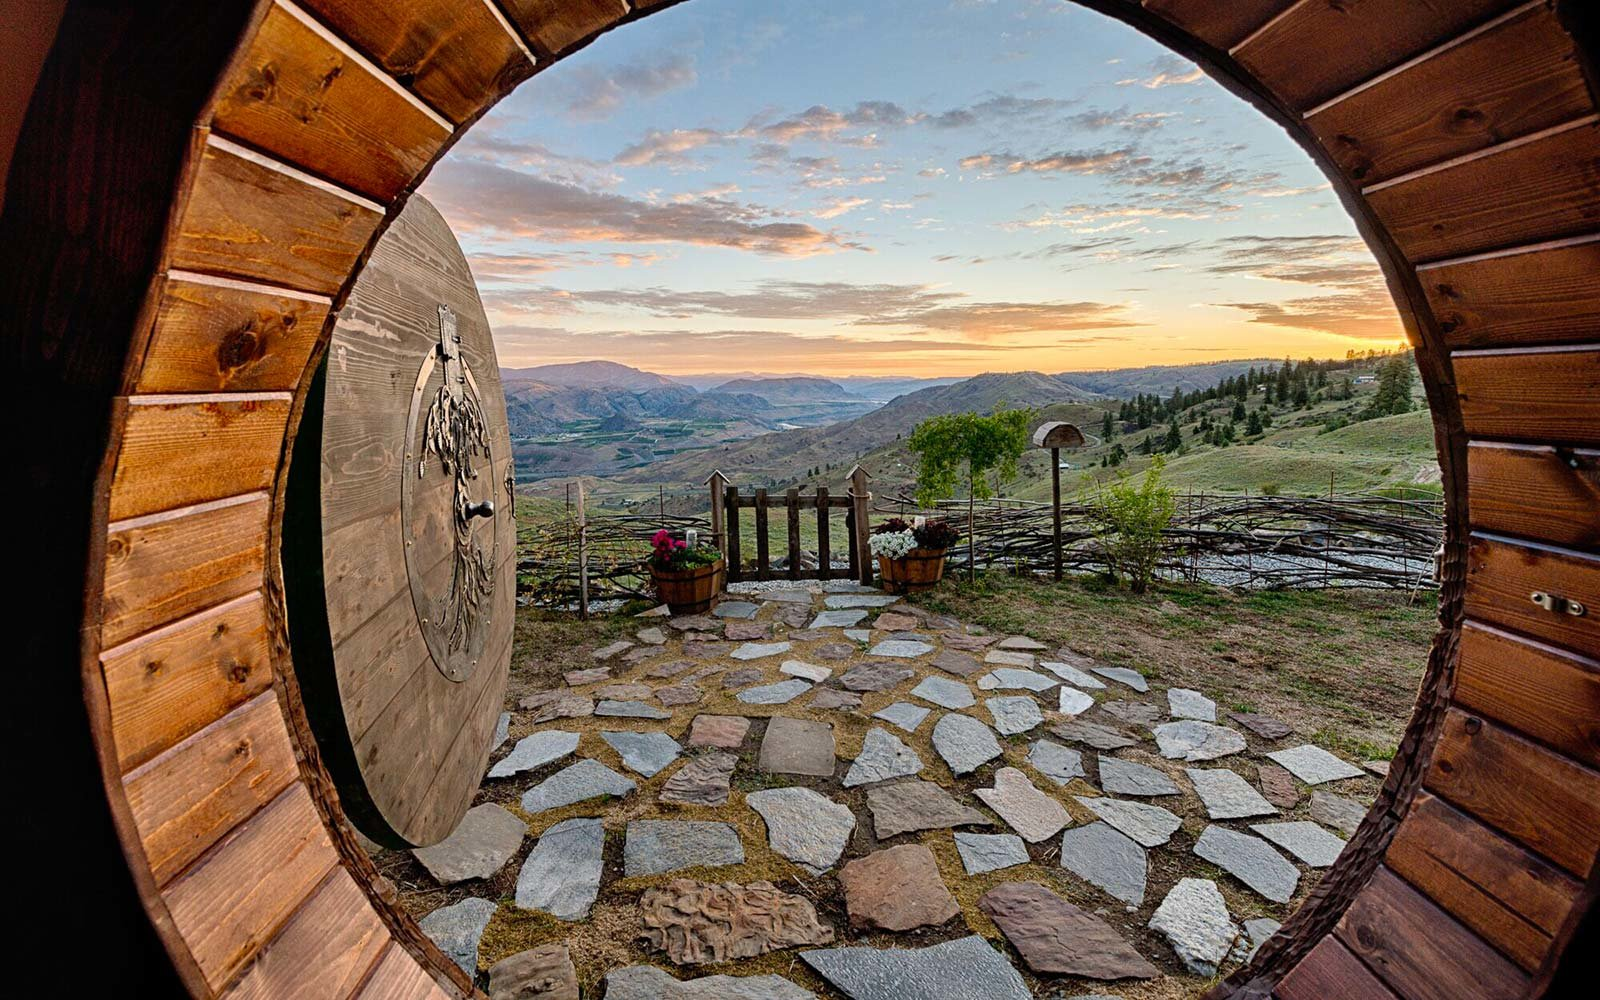 hobbit house washington airbnb rental home holiday travel